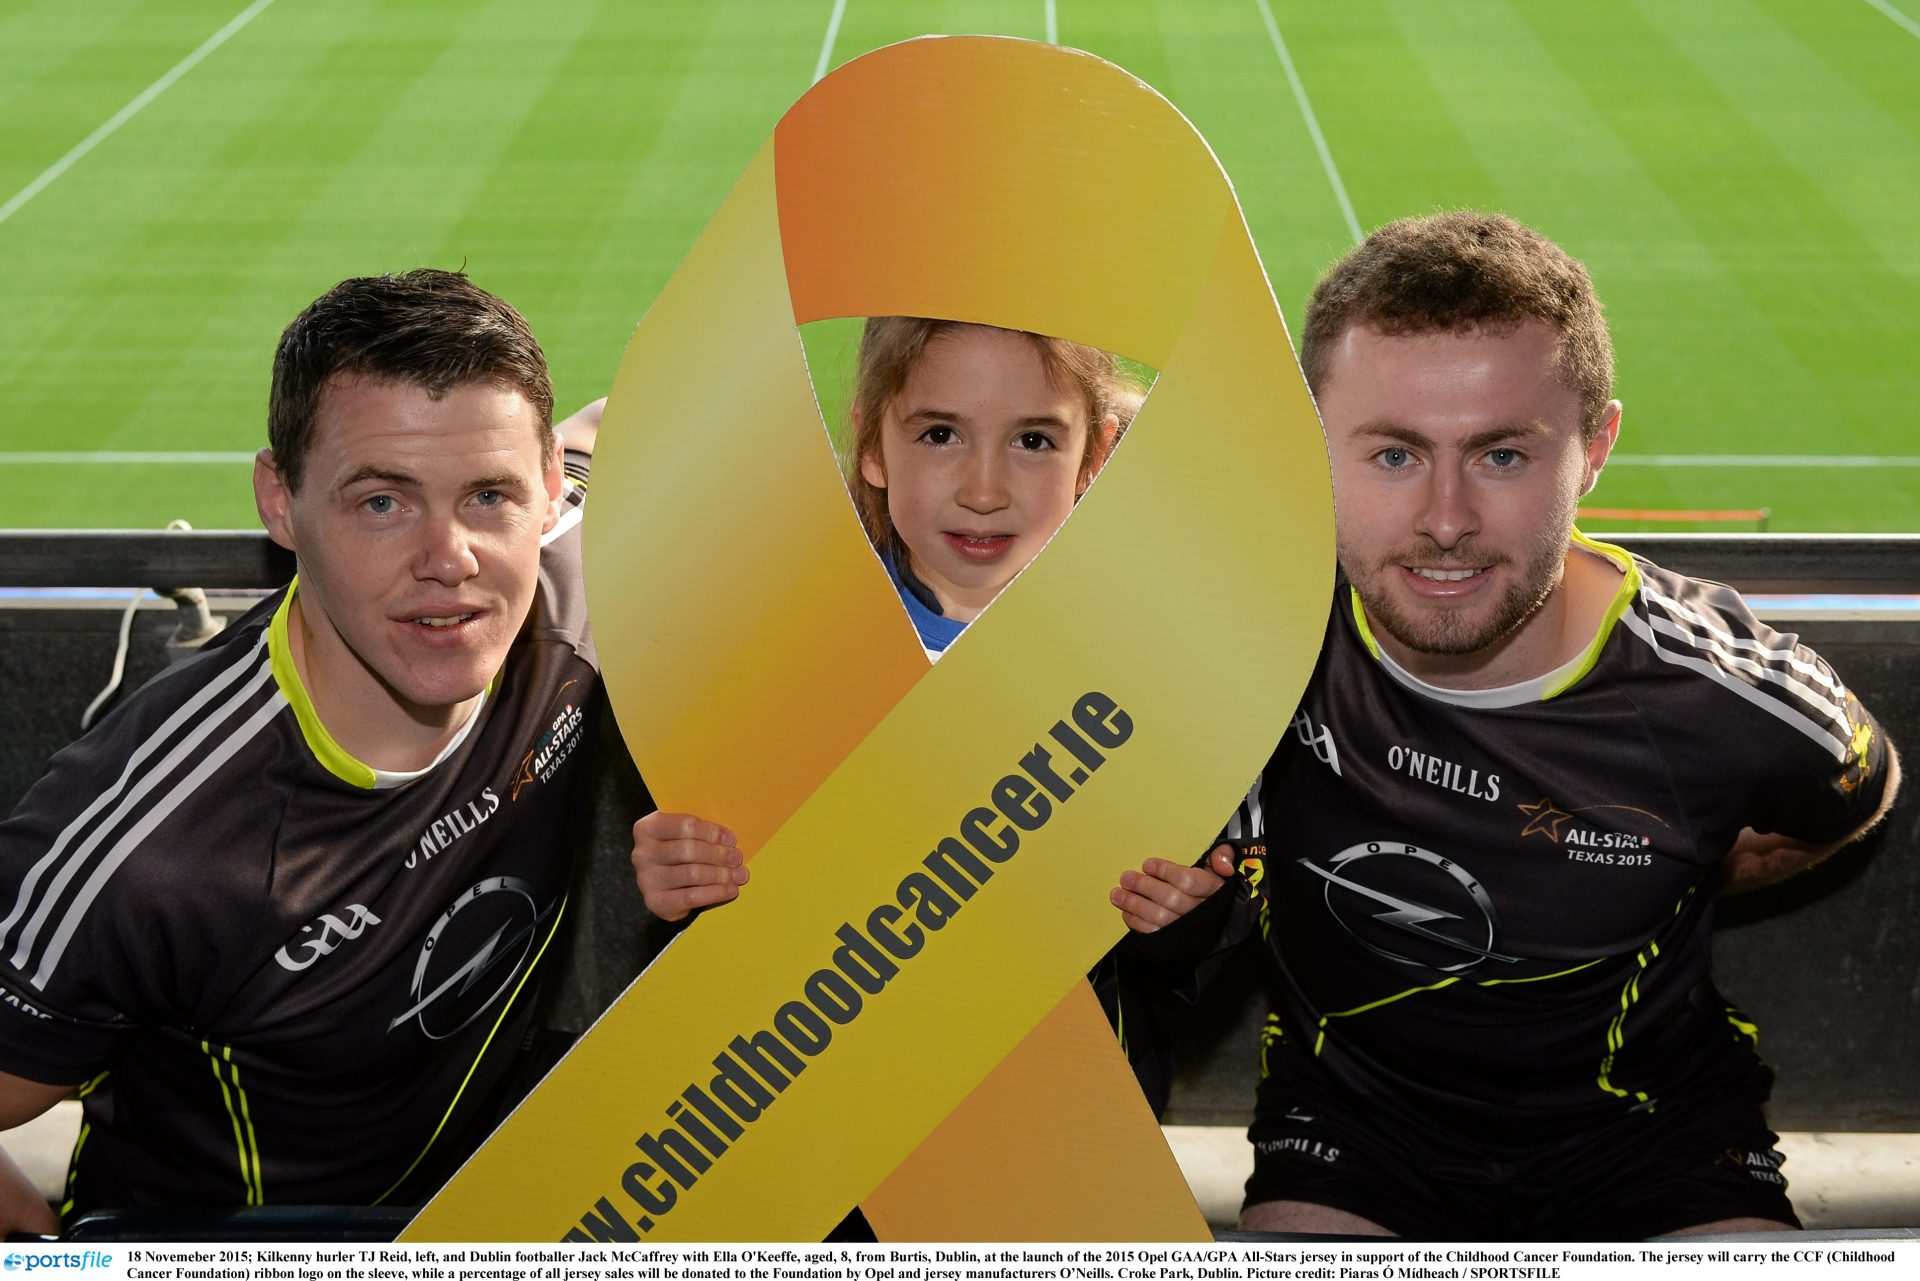 Opel launch new GAA-GPA All-Star jersey